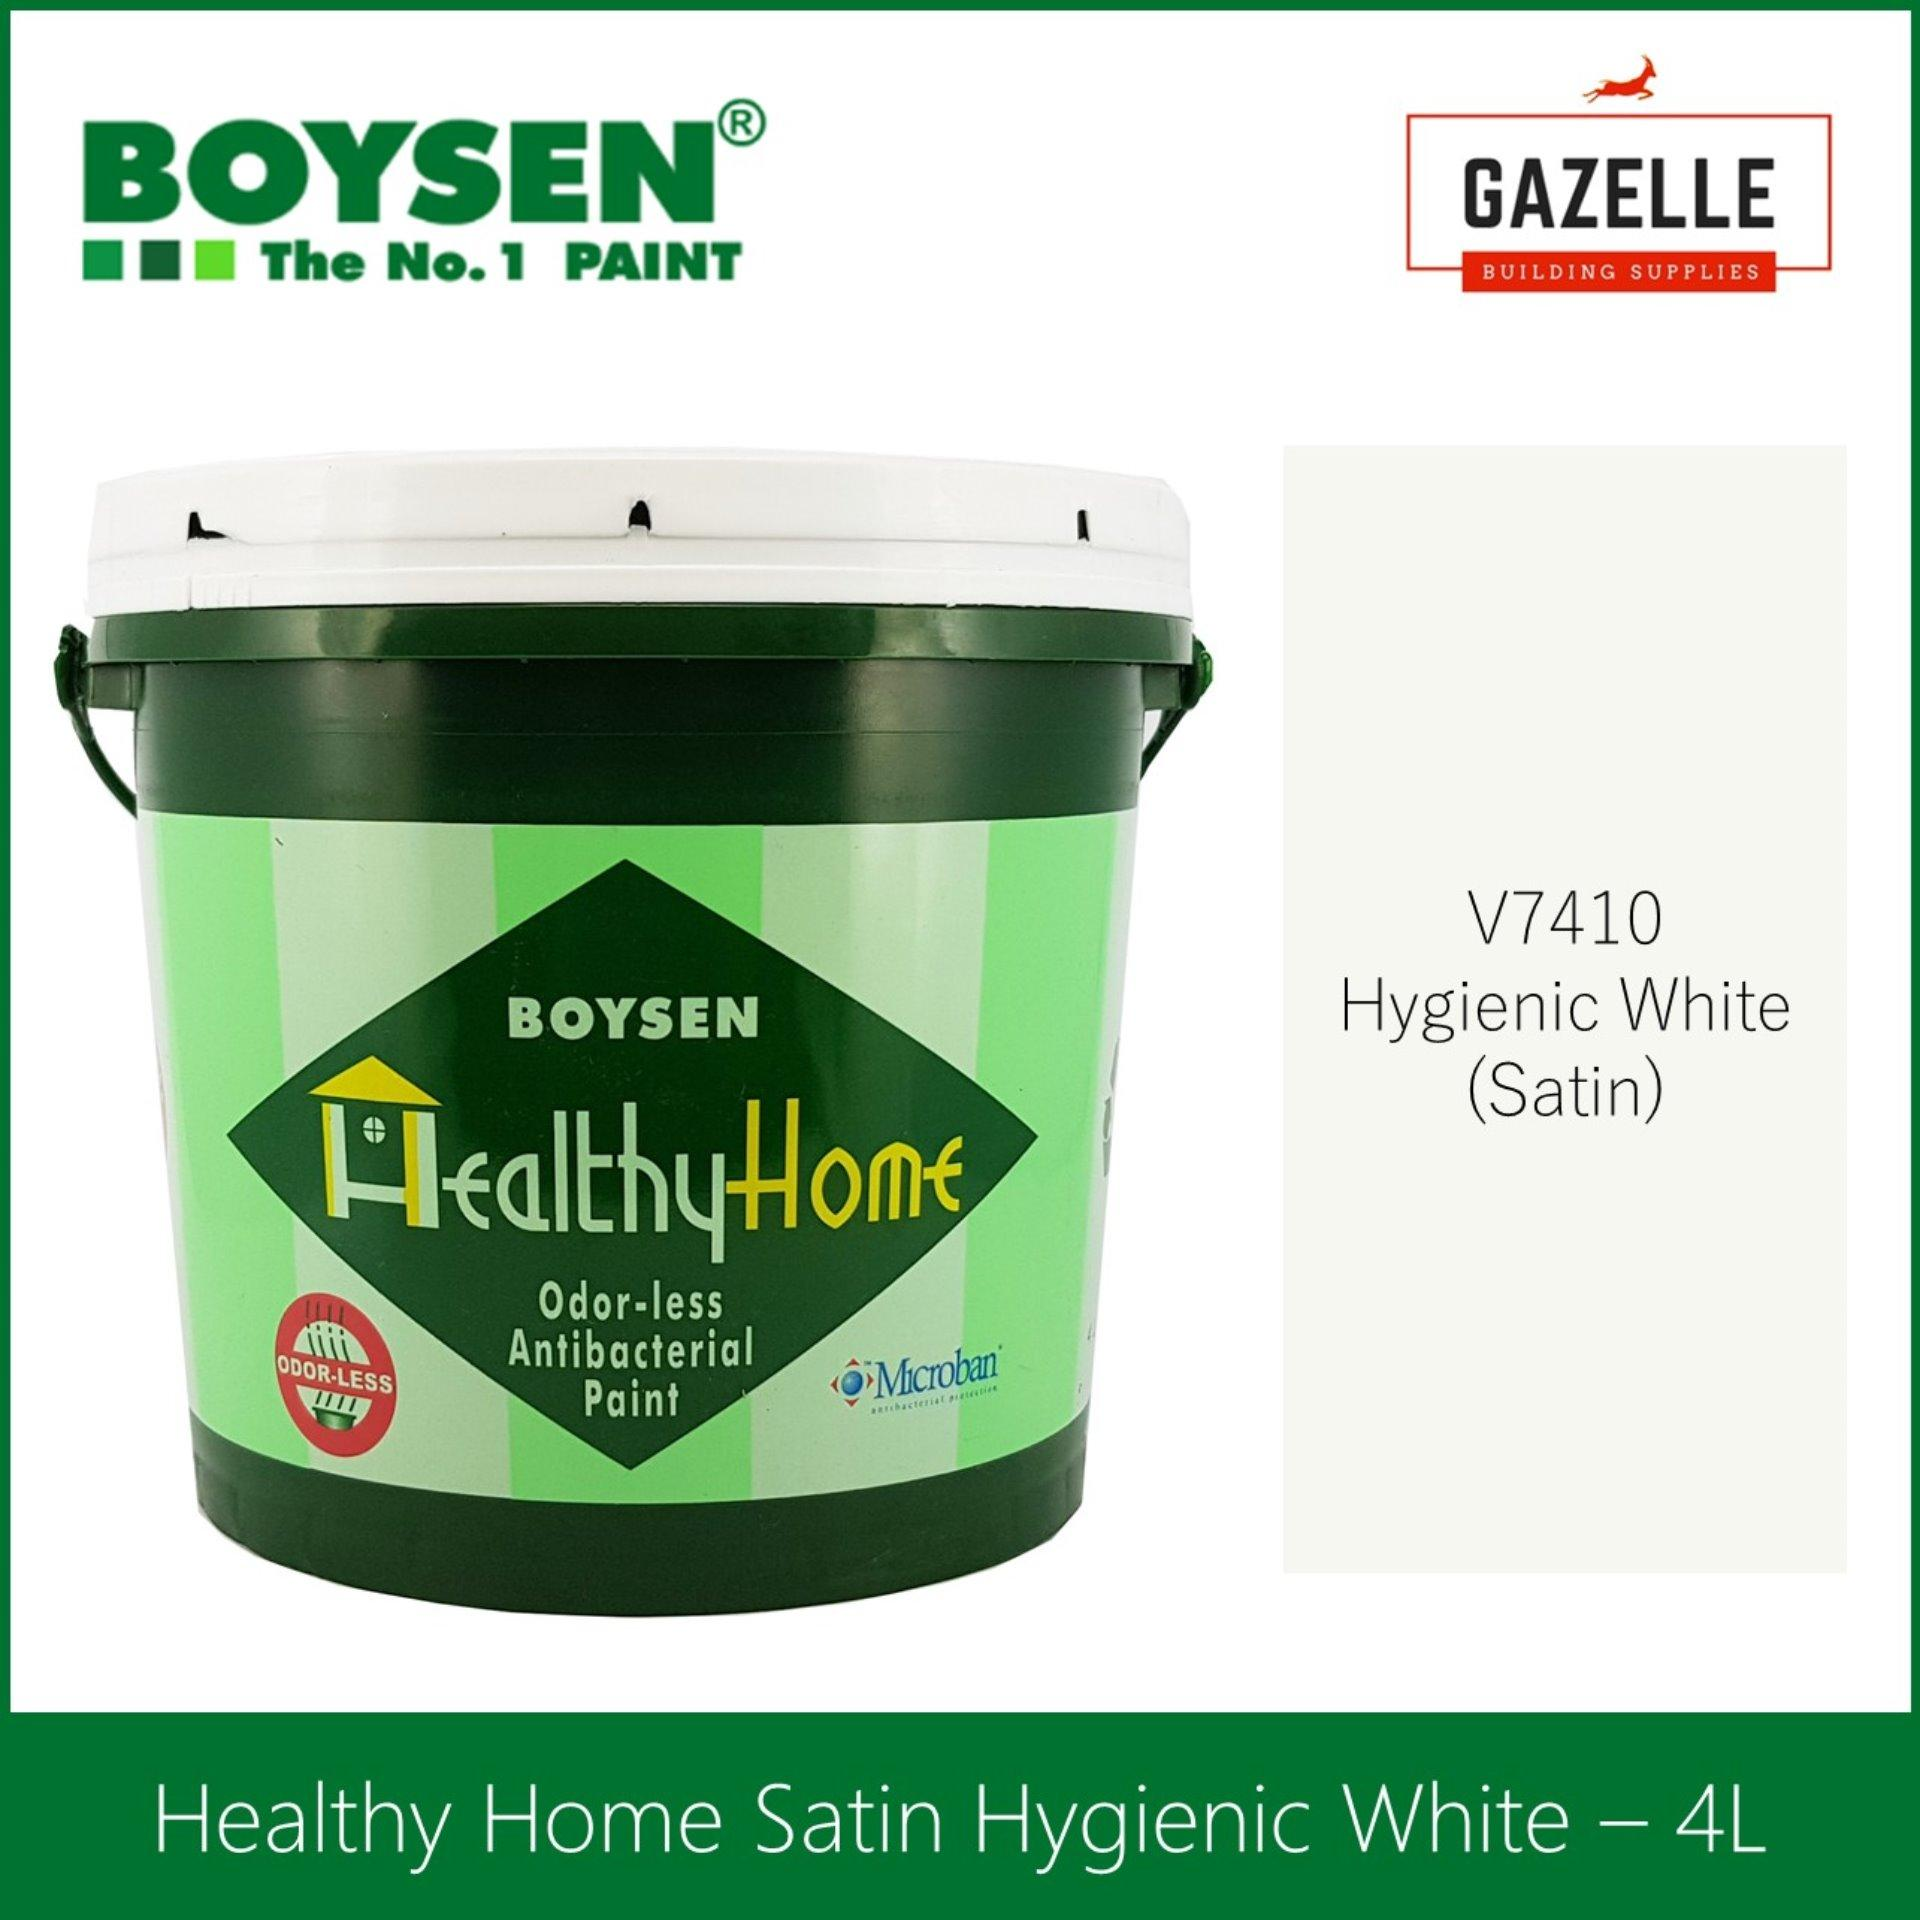 Boysen Healthy Home Odorless and Anti-Bacterial Paint Satin Hygienic White  - 4L